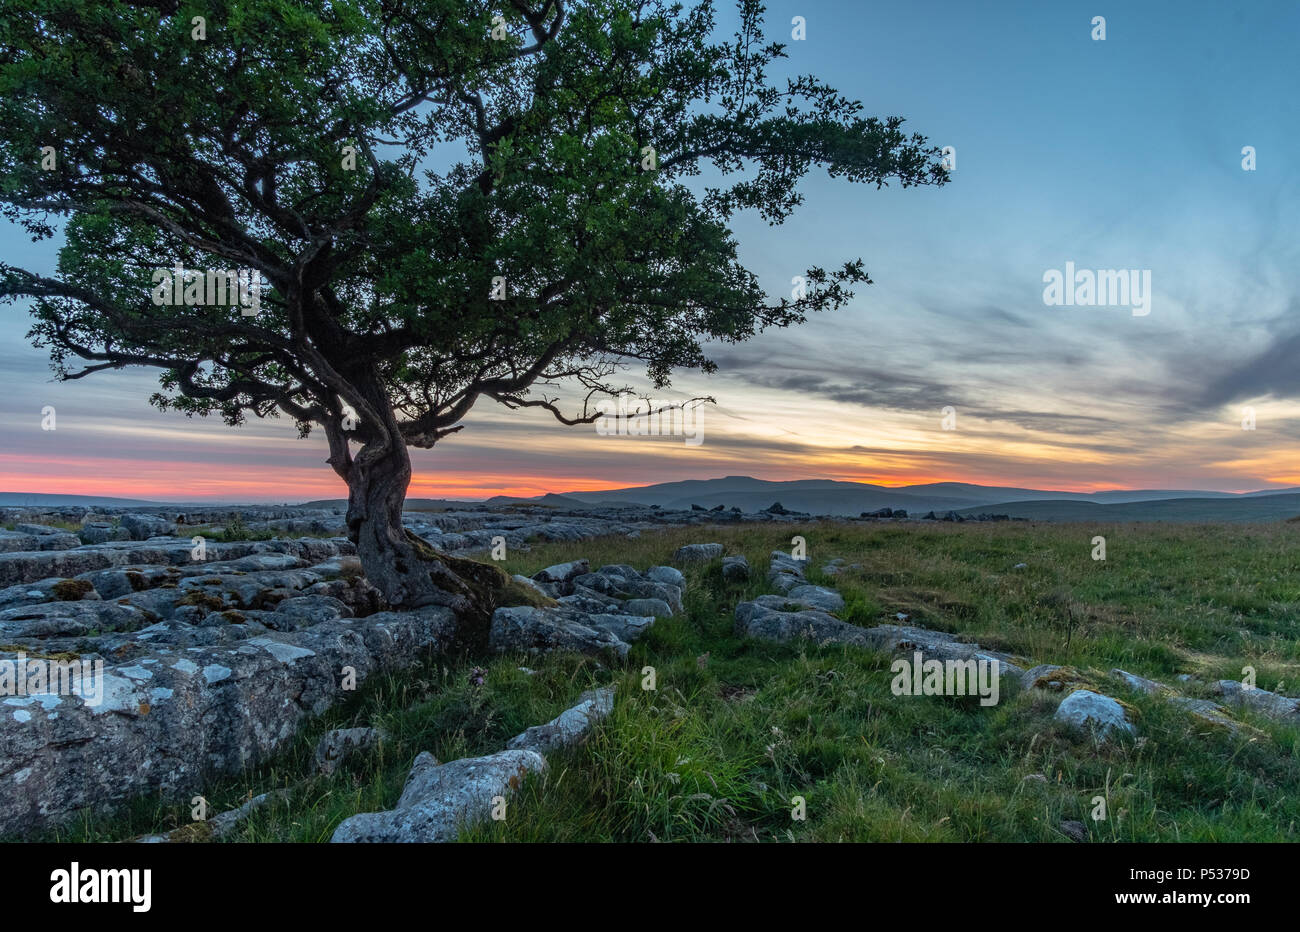 Incredible post-sunset light at the stunning Winskill Stones in the Yorkshire Dales National Park - Stock Image